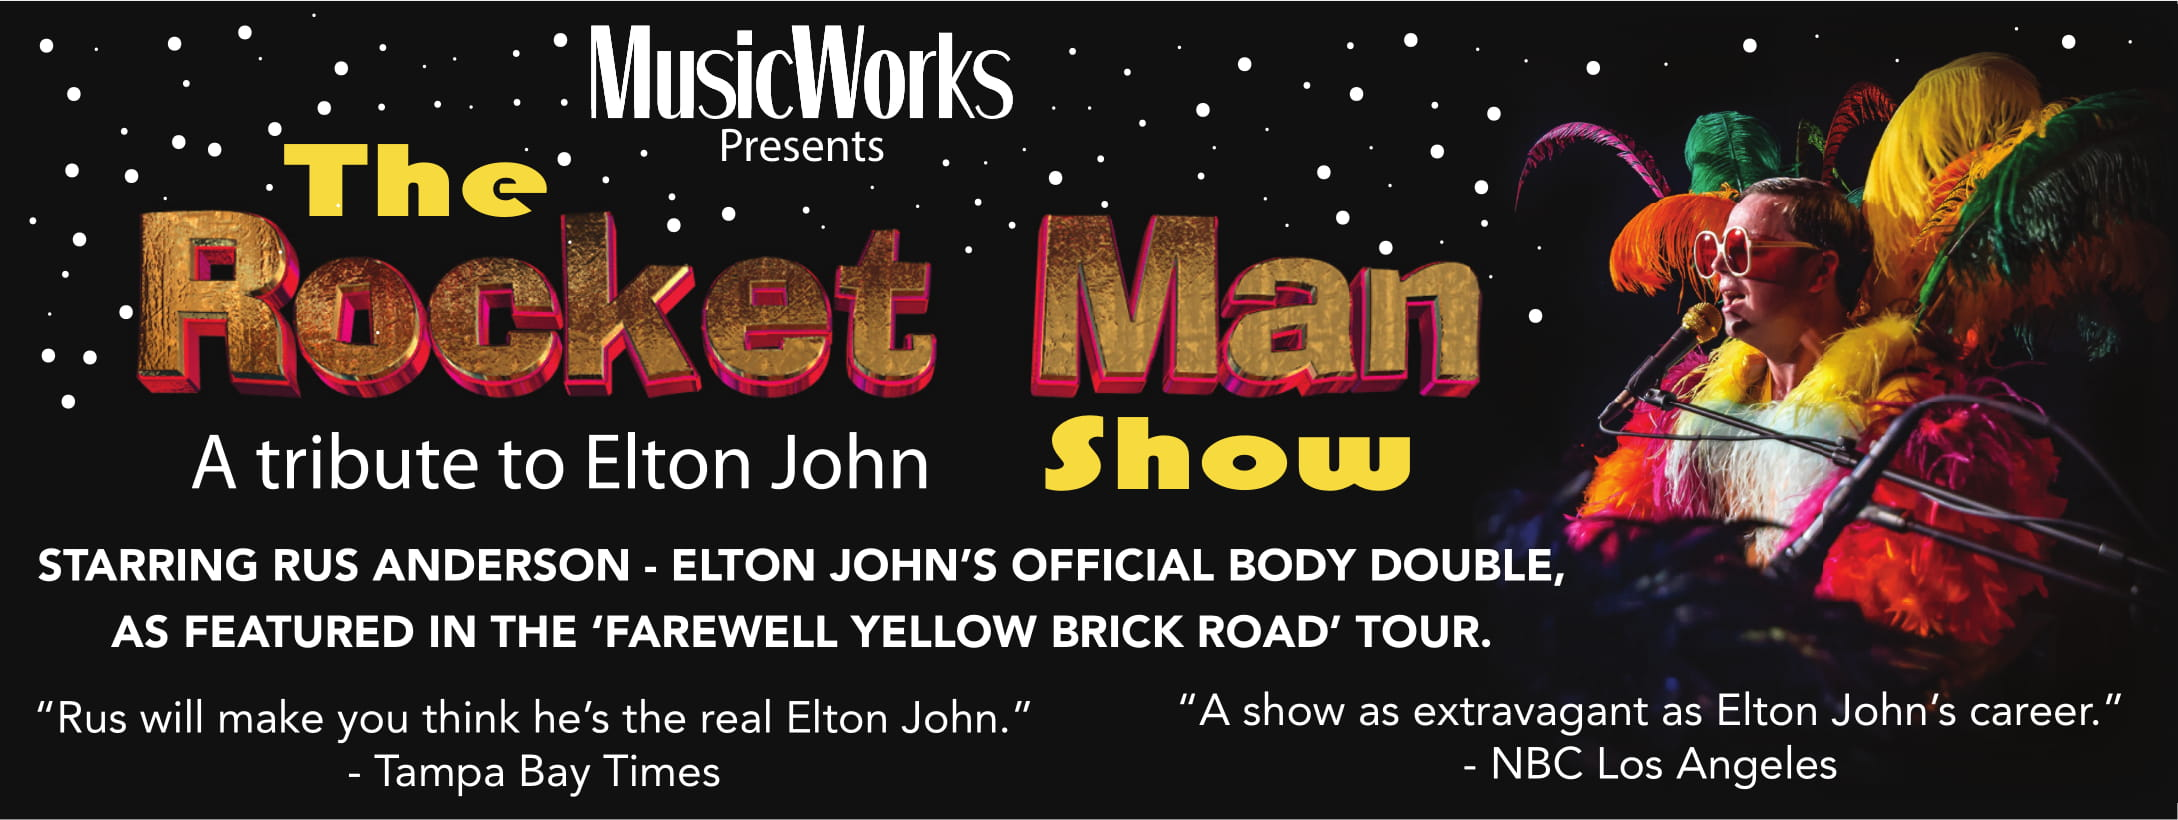 The Rocket Man Show Web Banner